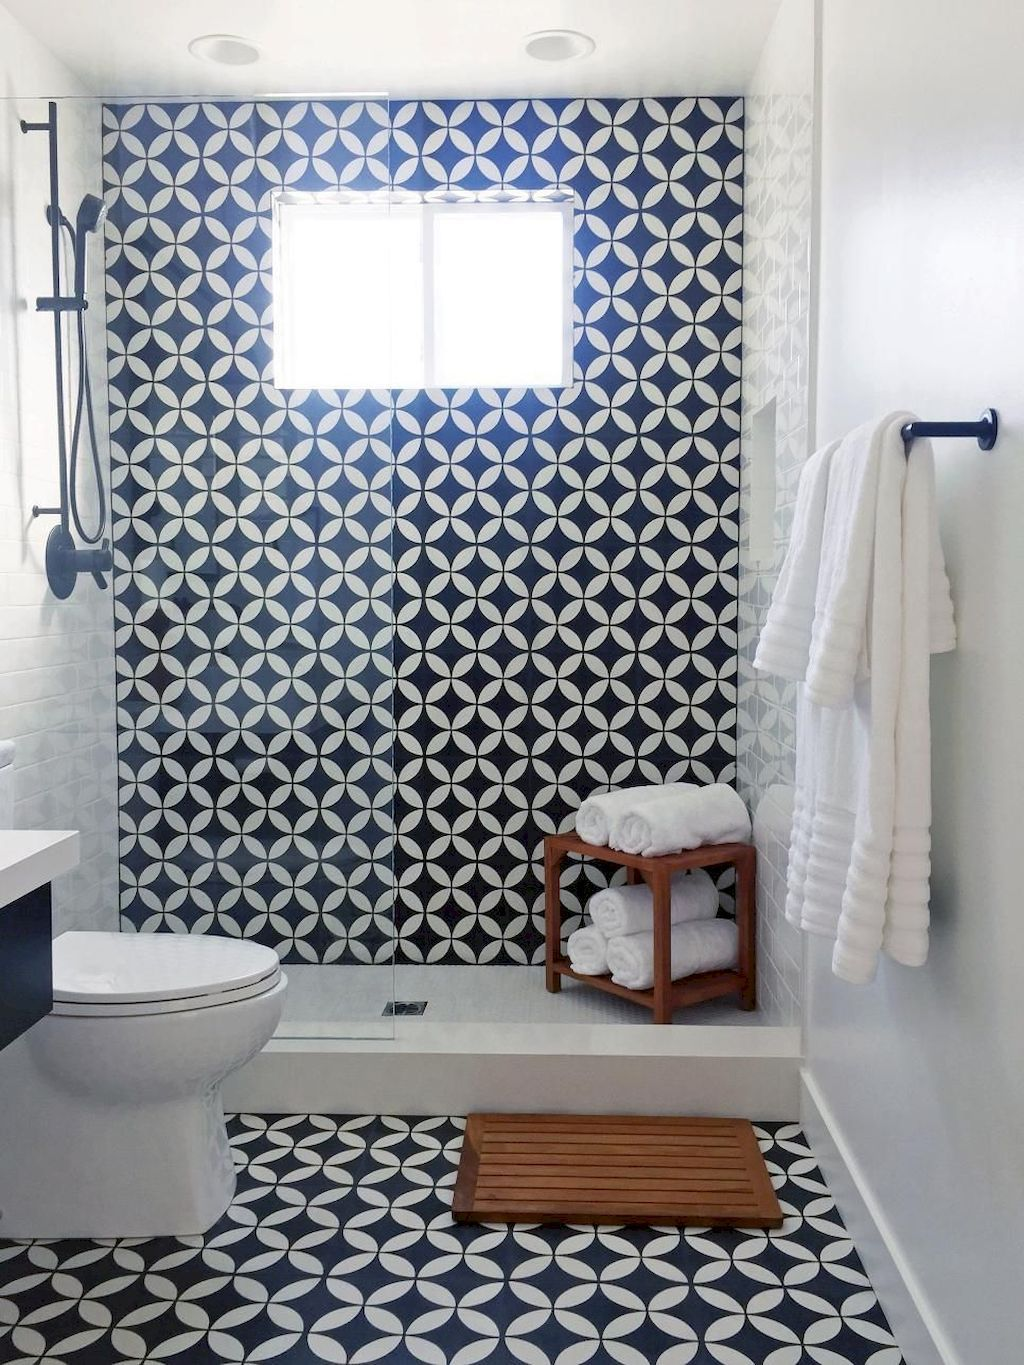 93 Cool Black And White Bathroom Design